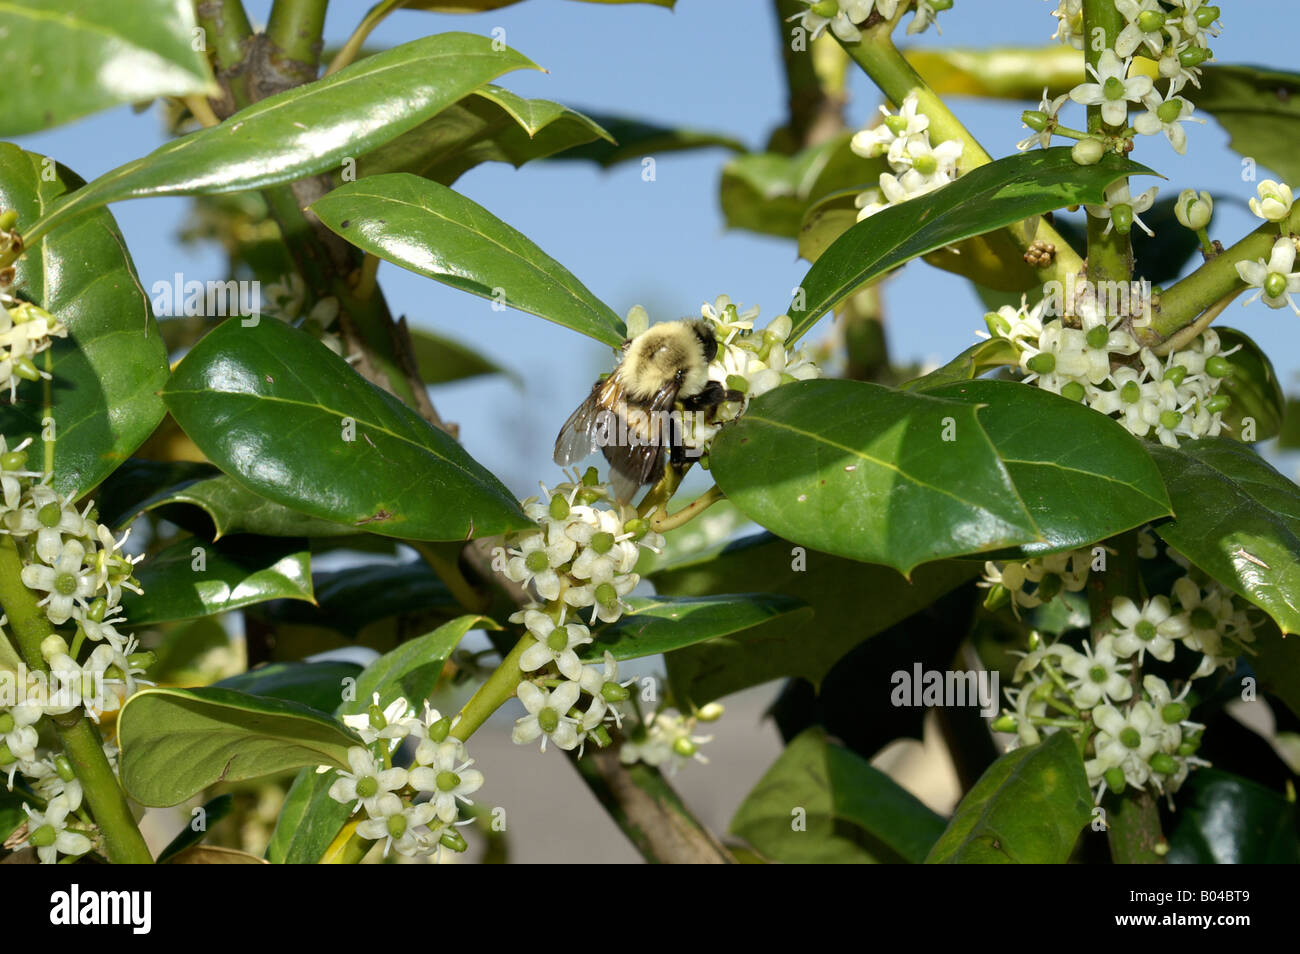 Bumble bee in green bush with white flowers and blue sky stock photo bumble bee in green bush with white flowers and blue sky mightylinksfo